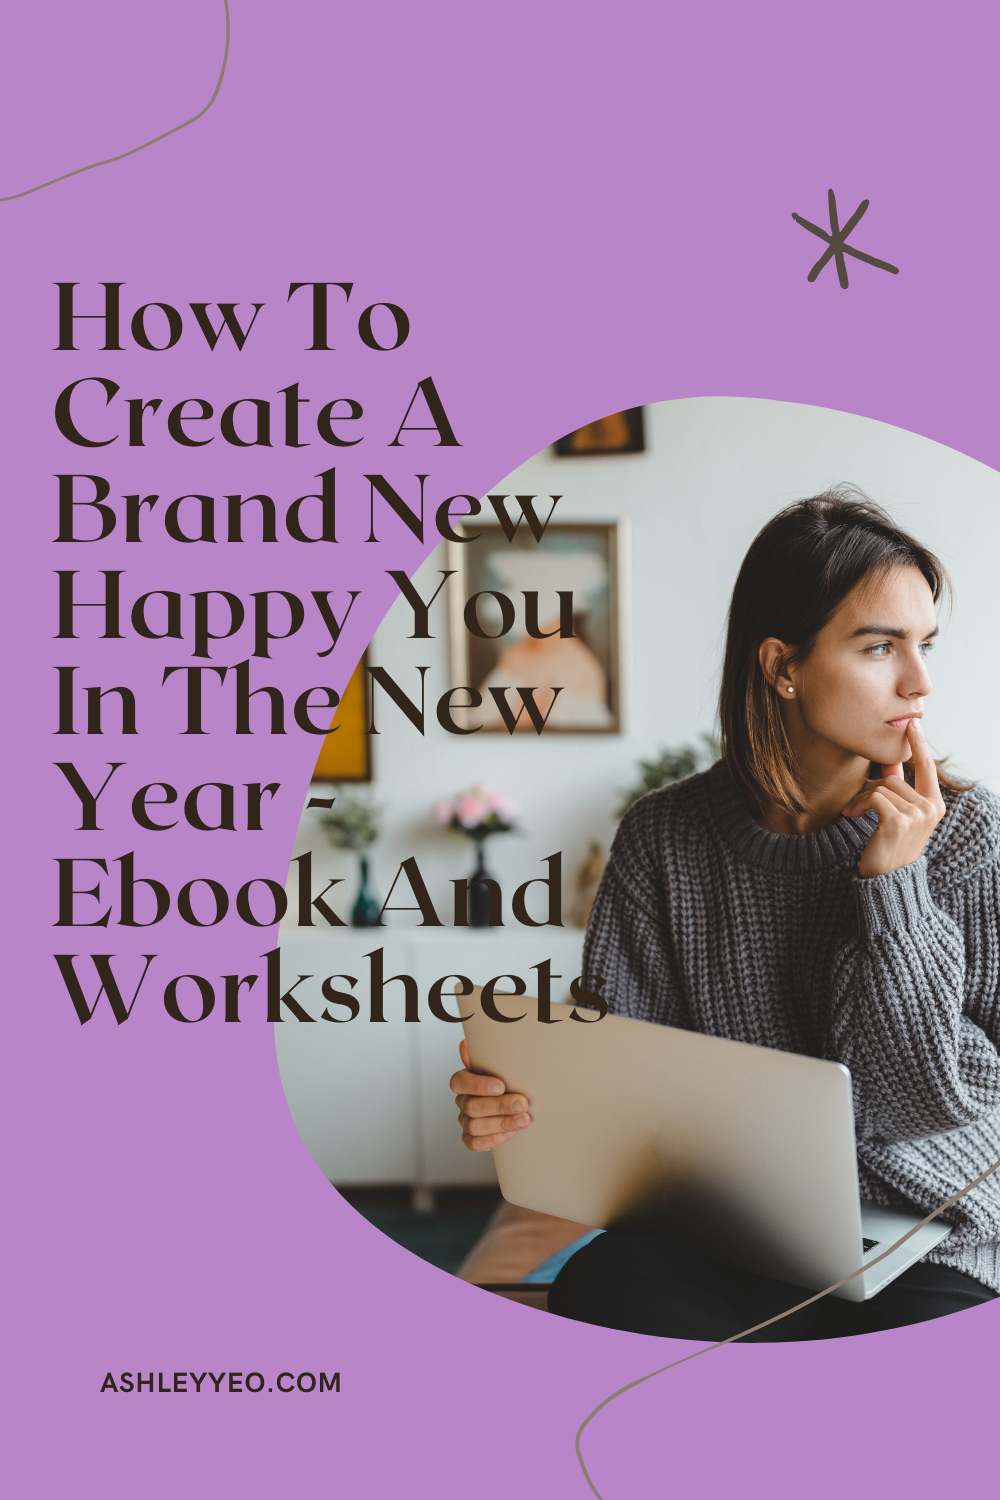 How To Create A Brand New Happy You In The New Year Ebook And Worksheets